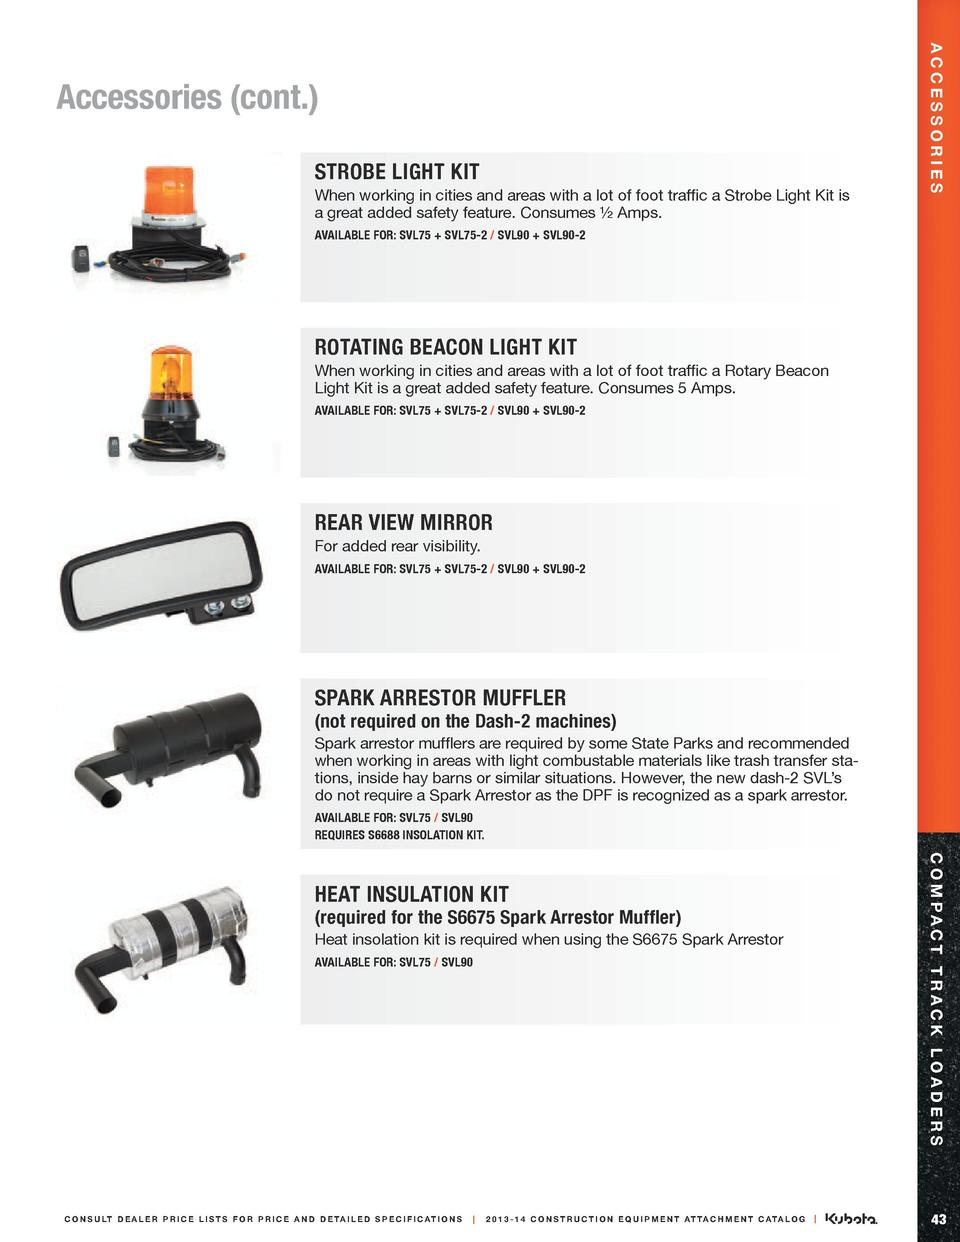 Strobe Light Kit When working in cities and areas with a lot of foot traffic a Strobe Light Kit is a great added safety fe...